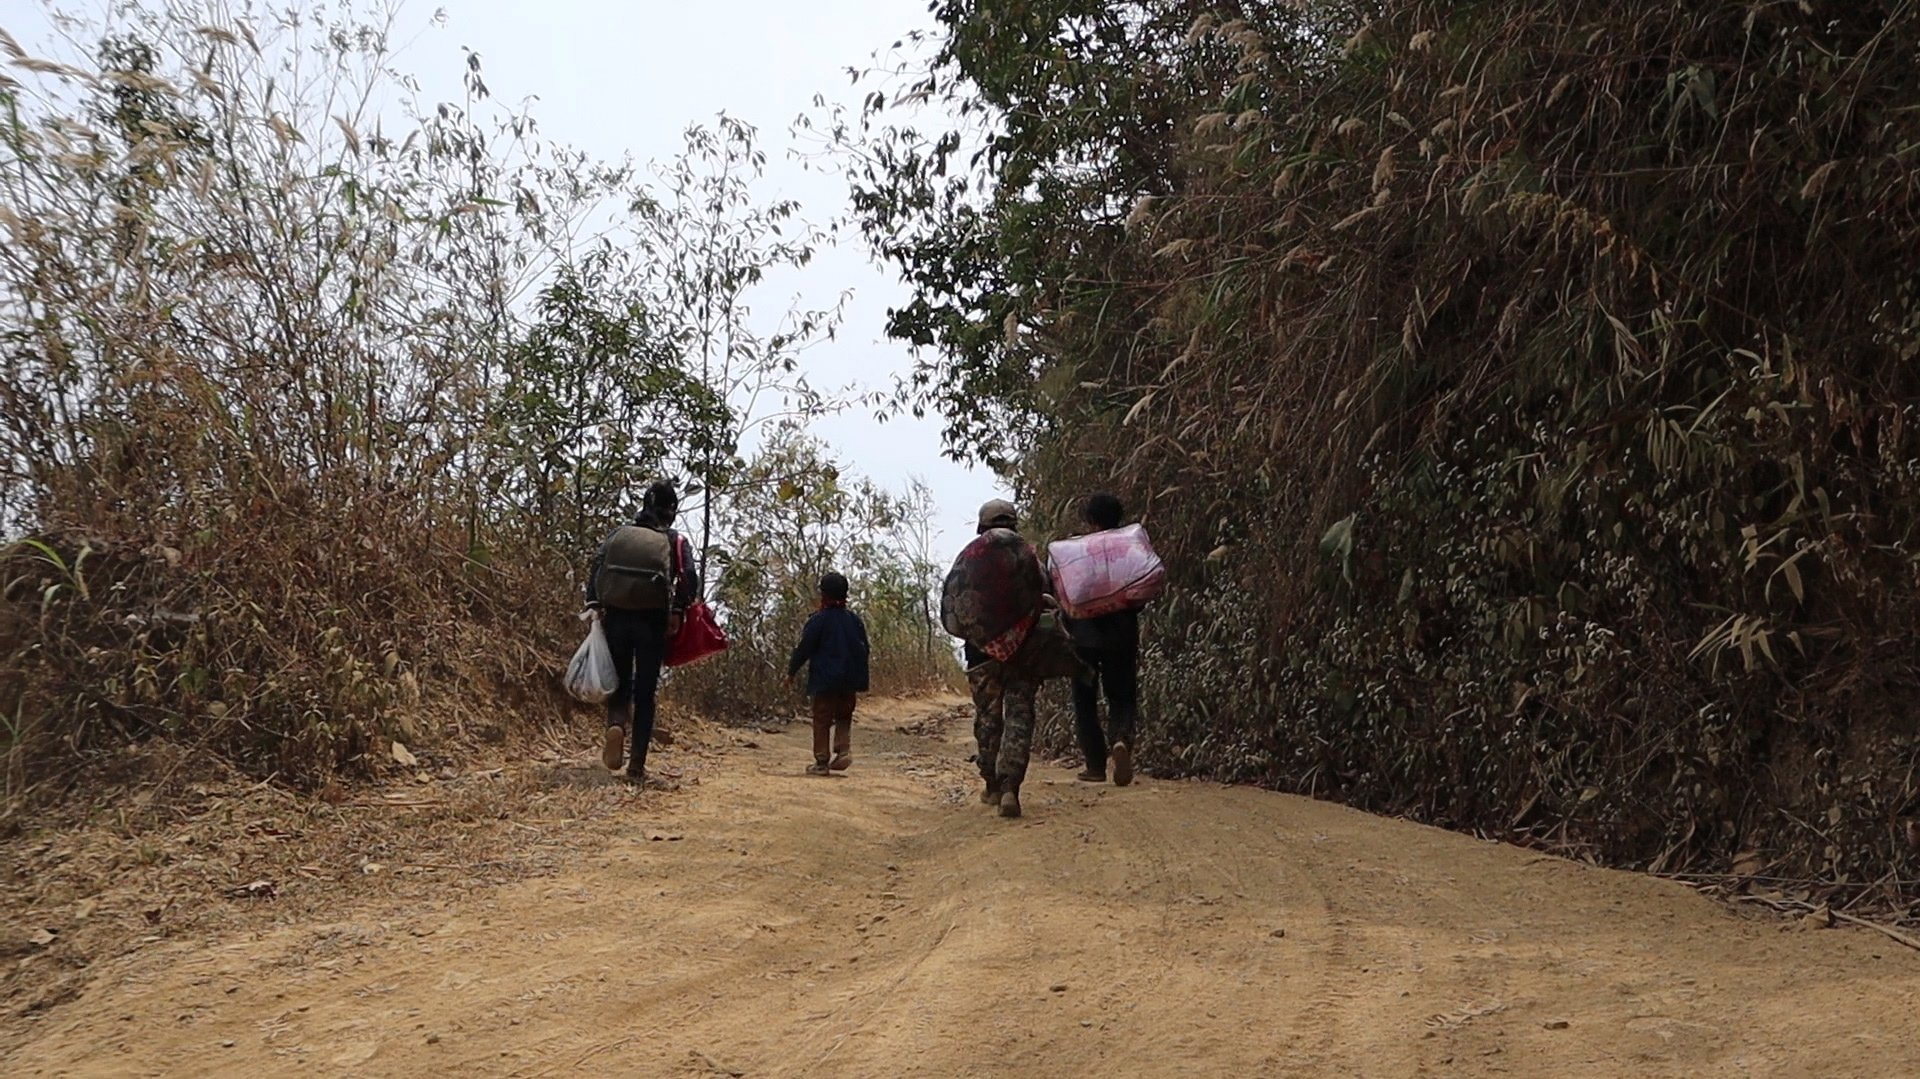 epa09098337 A small group of refugees from Myanmar carrying a few belongings after they crossed the border near a small village at an undisclosed location at the border between India and Myanmar to seek shelter in the area of Mizoram, India, 20 March 2021 (issued 26 March 2021). Many people from Myanmar crossed the border to India after the February 2021 military coup. Against all orders by the Indian government, villagers along the border and members of the Young Mizo Association (YMA), a non-governmental organization of India's northeastern state of Mizoram, are playing the role of a 'Good Samaritan' by sheltering Myanmarese seeking refuge in India. Among the refugees are many firemen and police personnel, who defied the army's forcefully order to stop the civil disobedience movement (CDM) protest across the Chin Hills state of Myanmar.  EPA/SANGZUALA HMAR